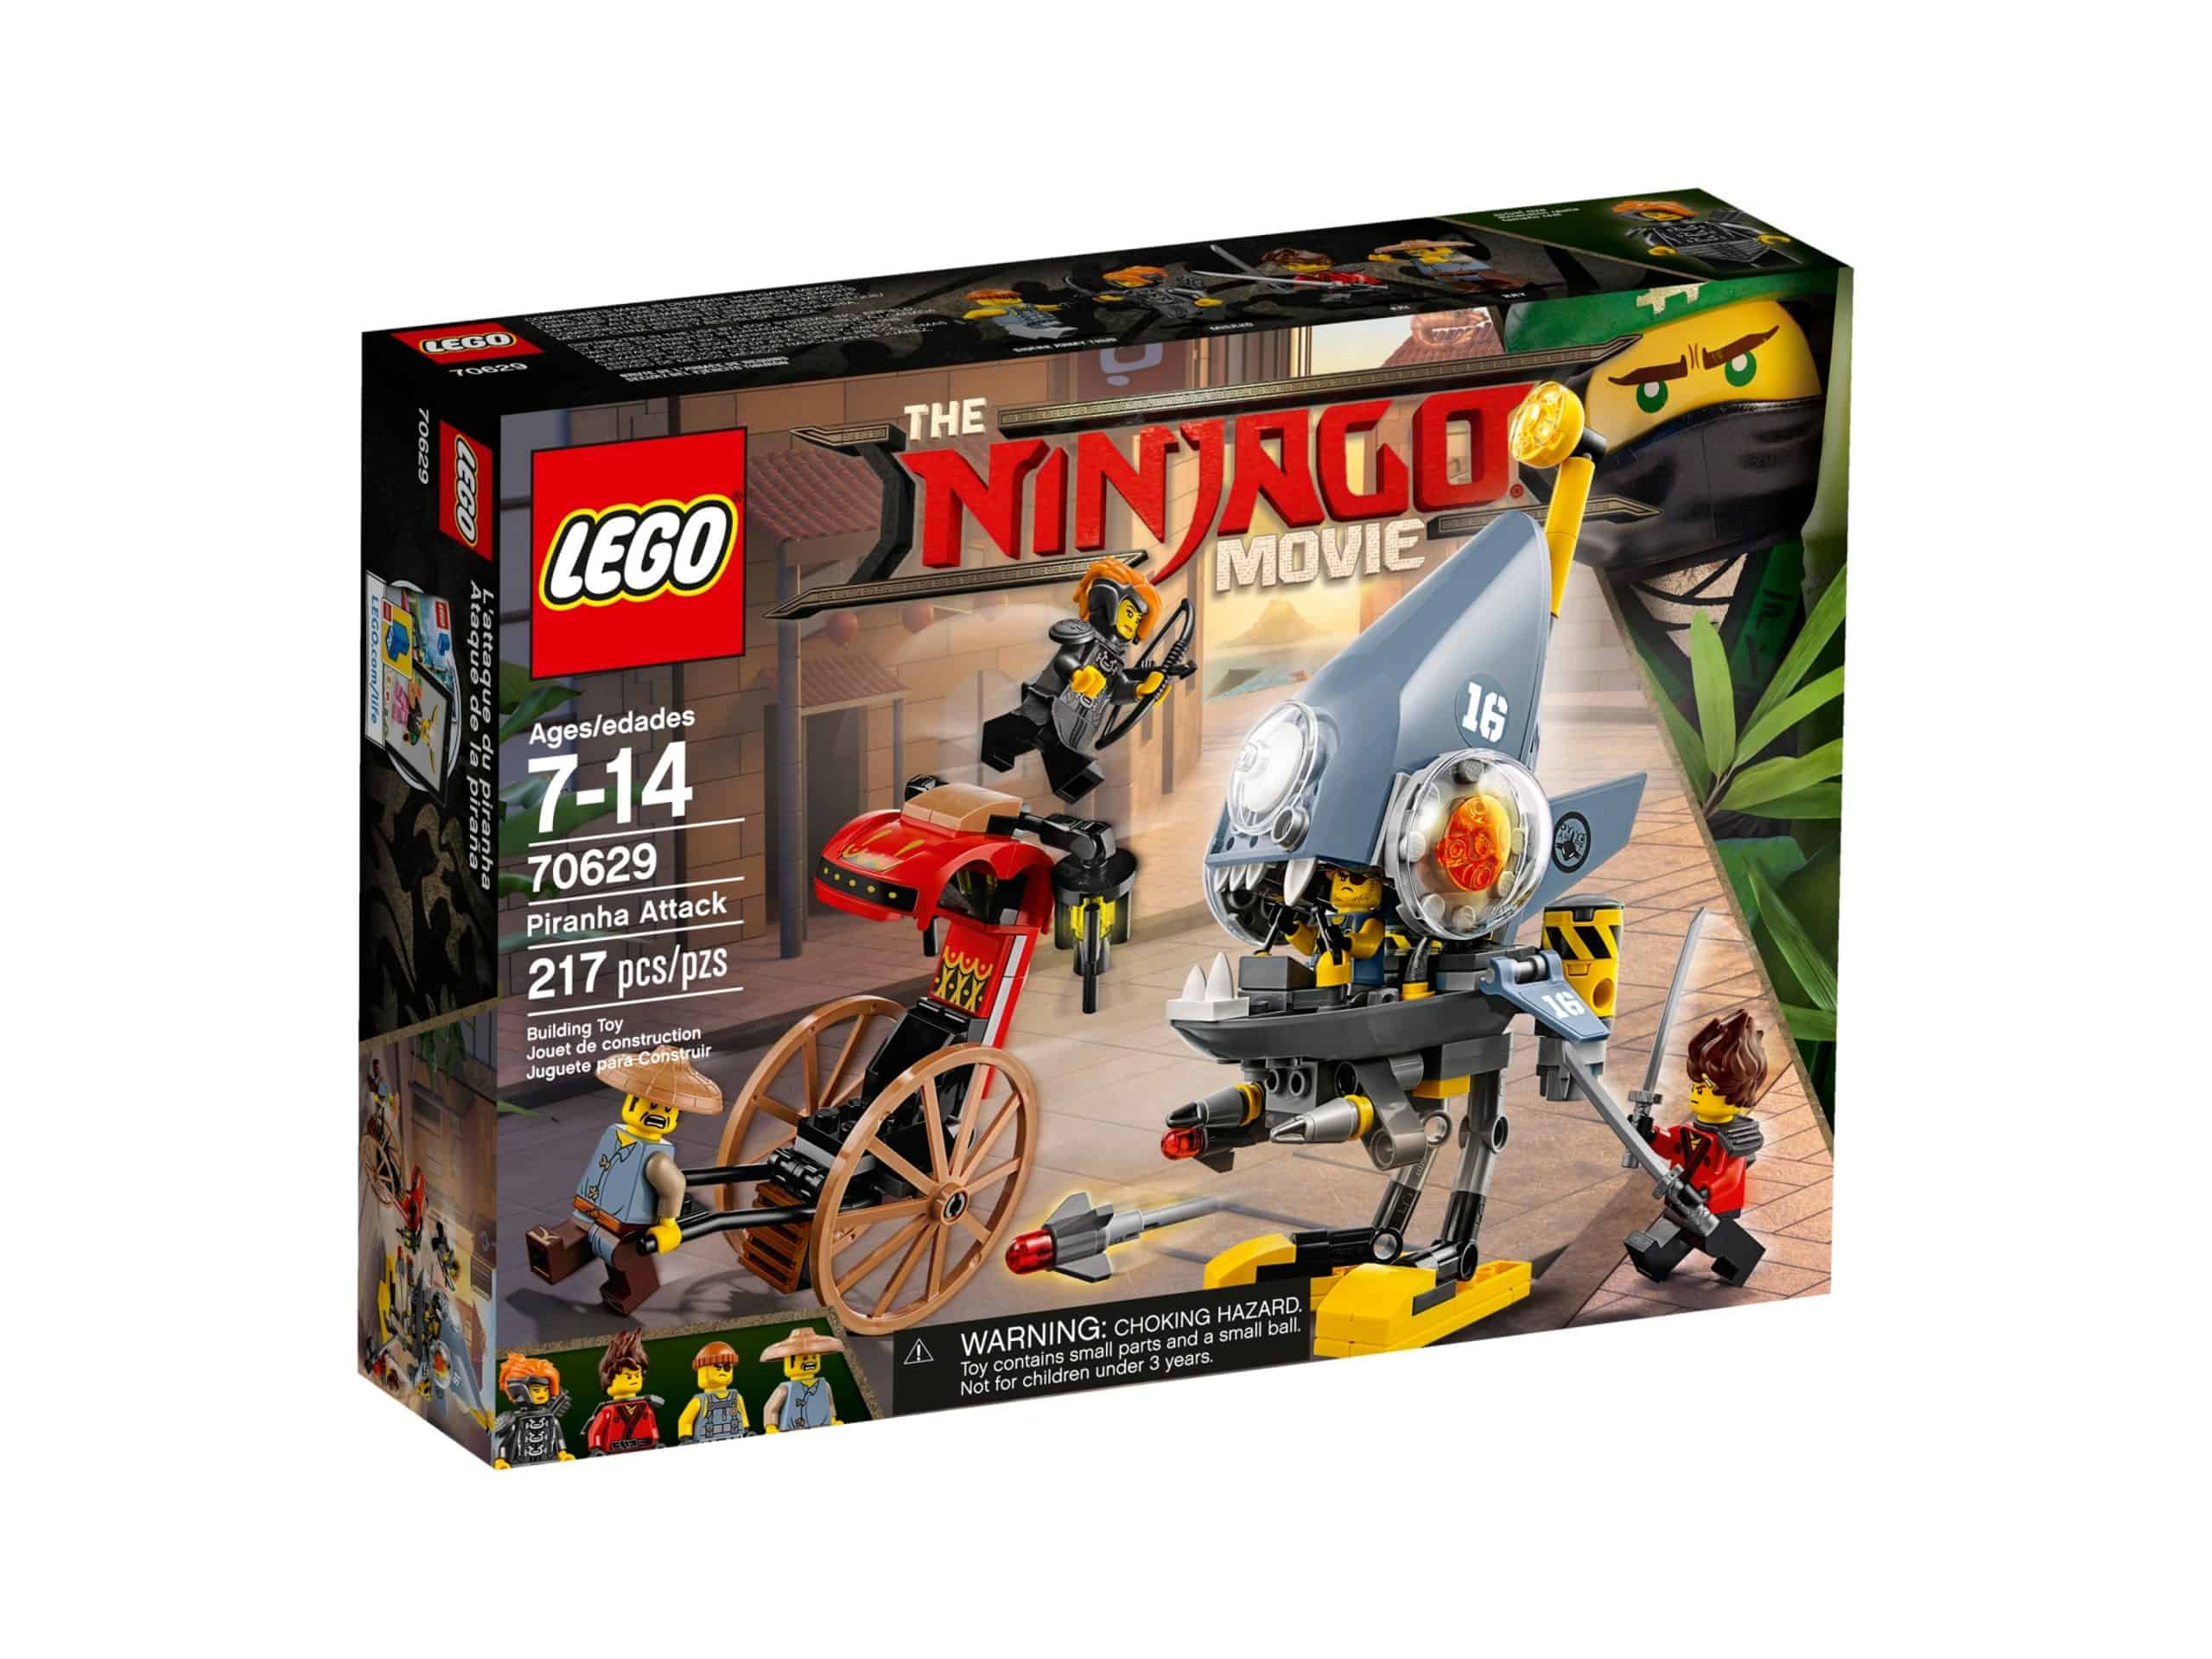 lego 70629 piratfiskeangreb scaled